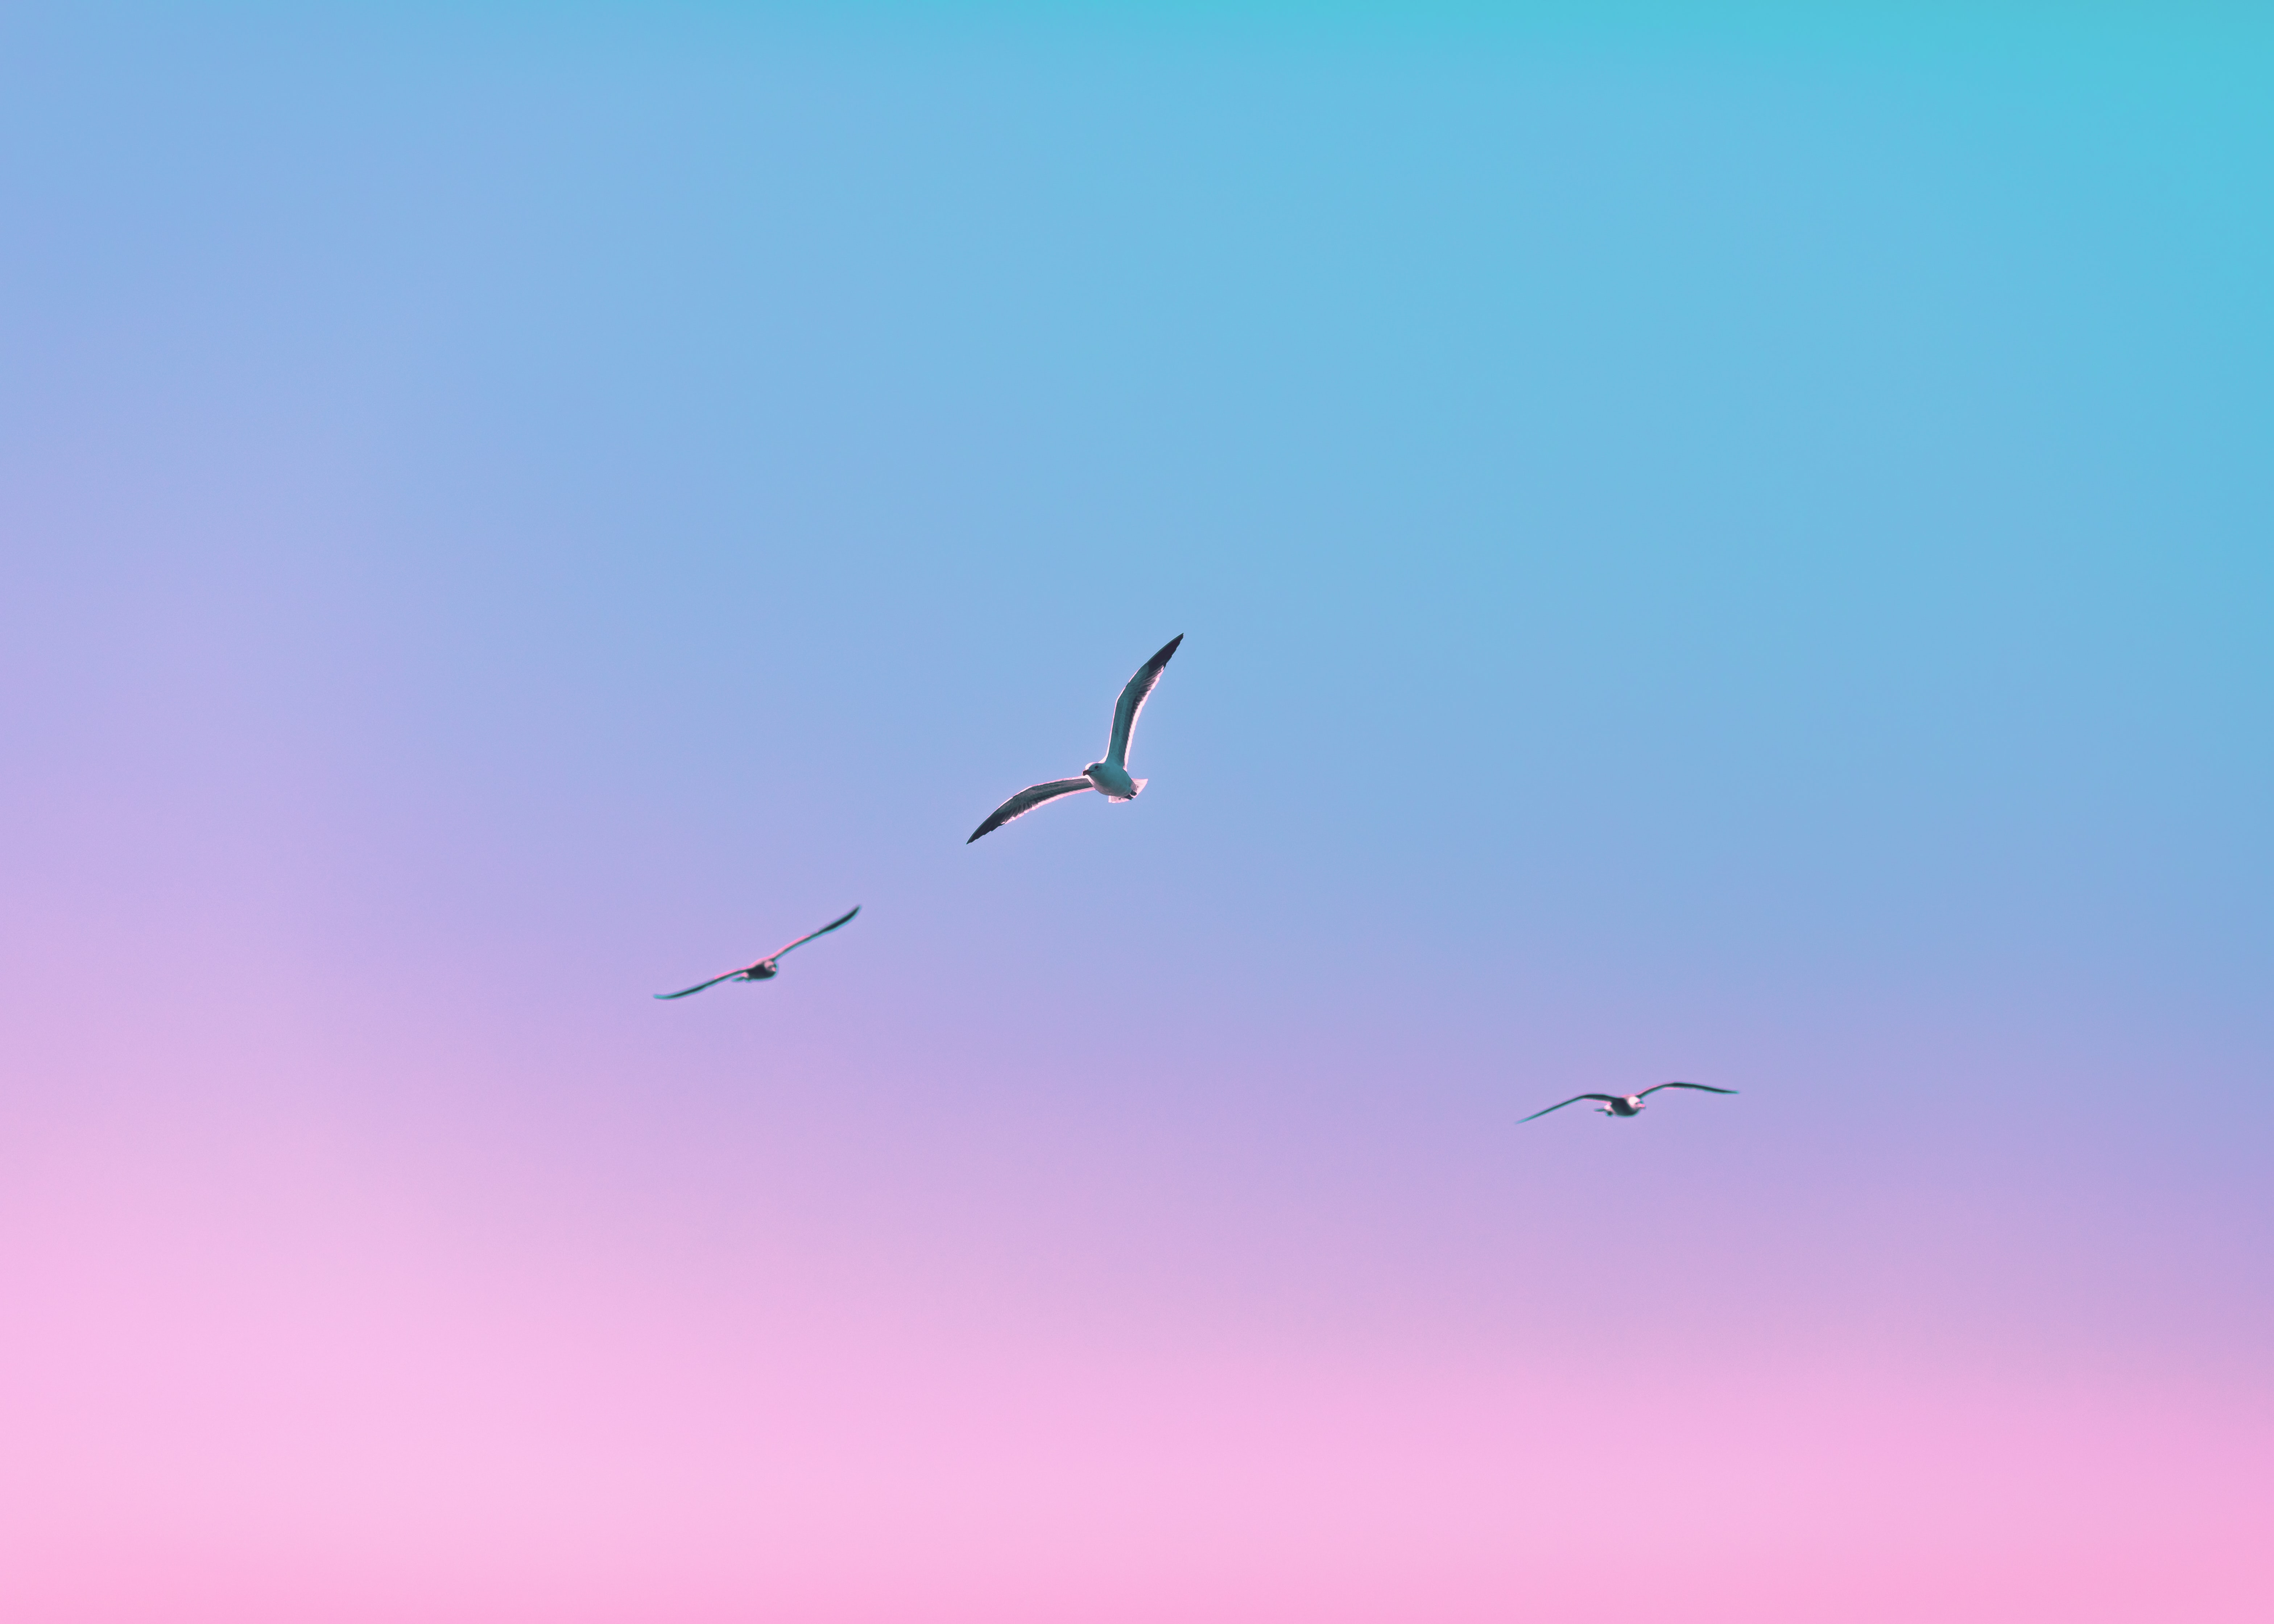 64508 download wallpaper Minimalism, Flight, Gradient, Birds, Seagulls screensavers and pictures for free